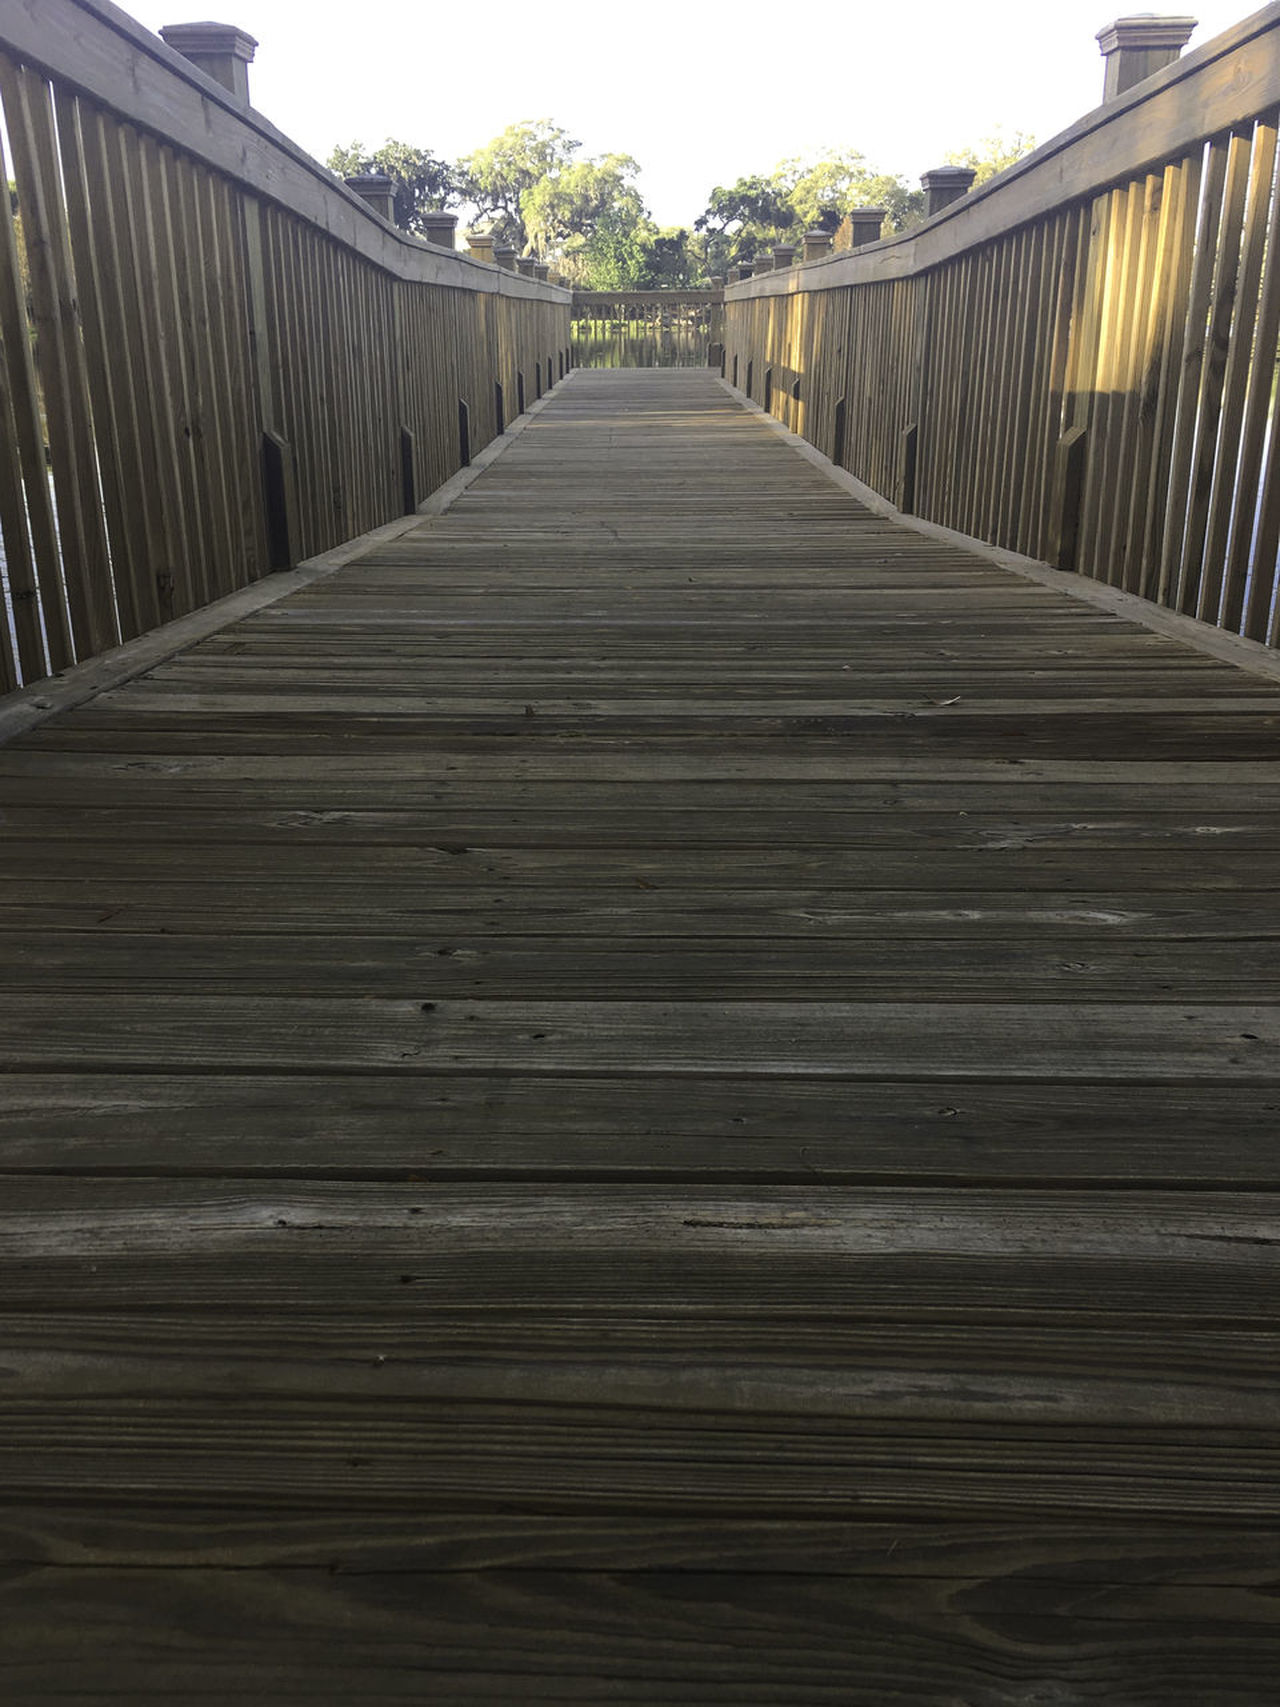 wooden path Architecture Bridge - Man Made Structure Built Structure Connection Day Footbridge Nature No People Outdoors Railing Sky The Way Forward Tree Wood - Material Wood Paneling